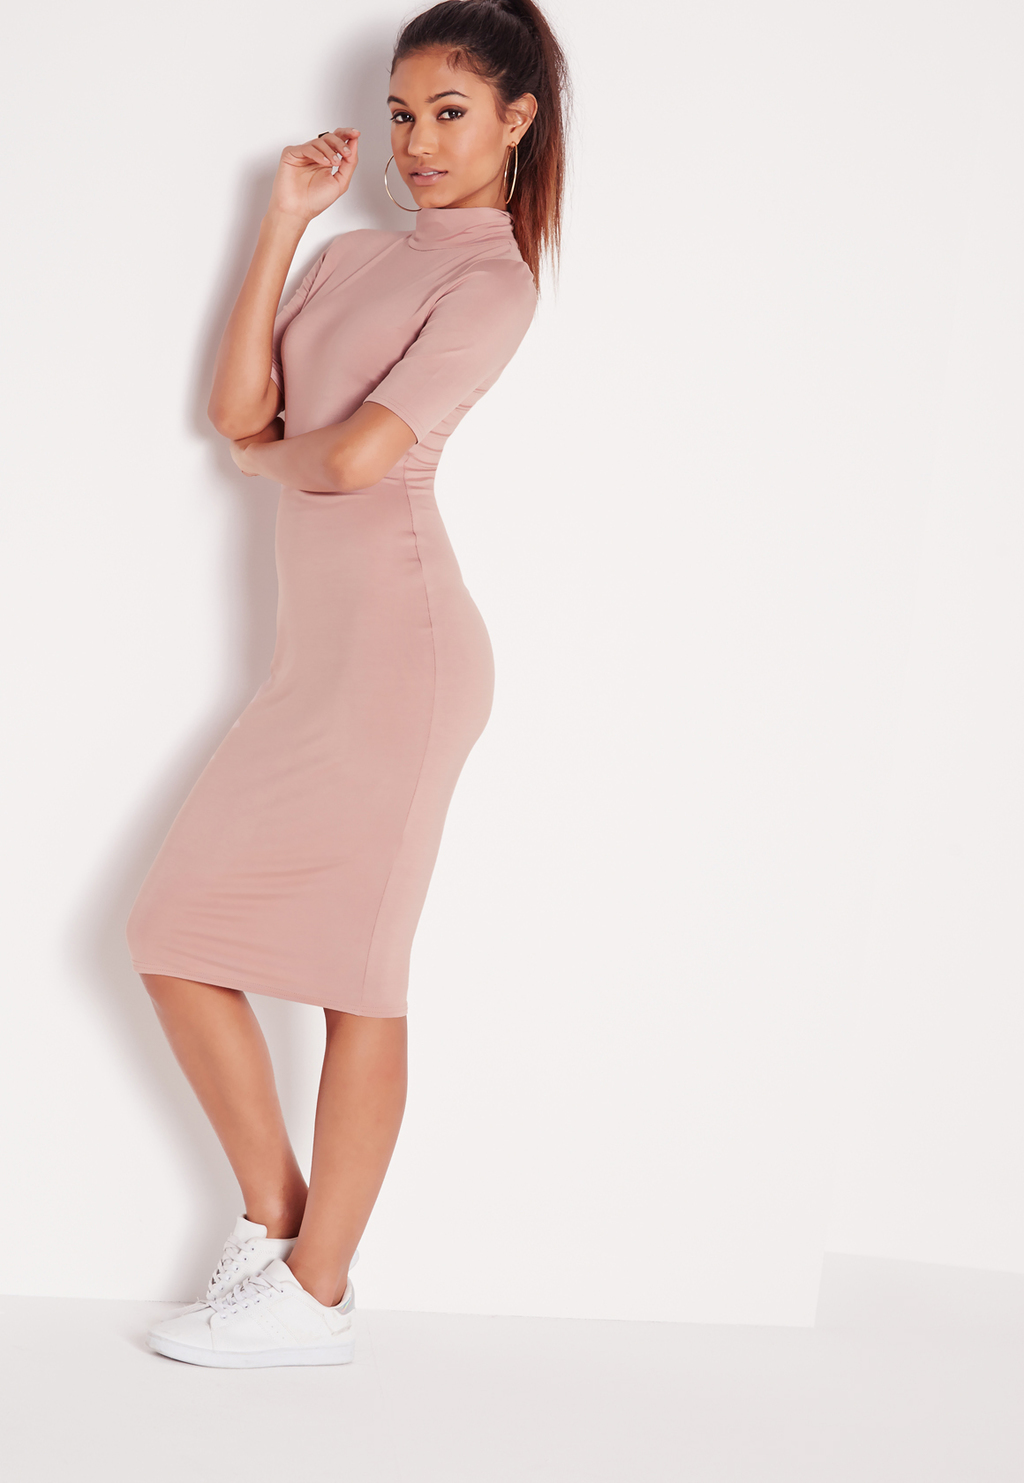 High Neck Short Sleeve Bodycon Dress Dusky Pink, Pink - length: below the knee; fit: tight; pattern: plain; neckline: high neck; style: bodycon; hip detail: fitted at hip; predominant colour: blush; occasions: evening; fibres: polyester/polyamide - stretch; sleeve length: half sleeve; sleeve style: standard; texture group: jersey - clingy; pattern type: fabric; season: s/s 2016